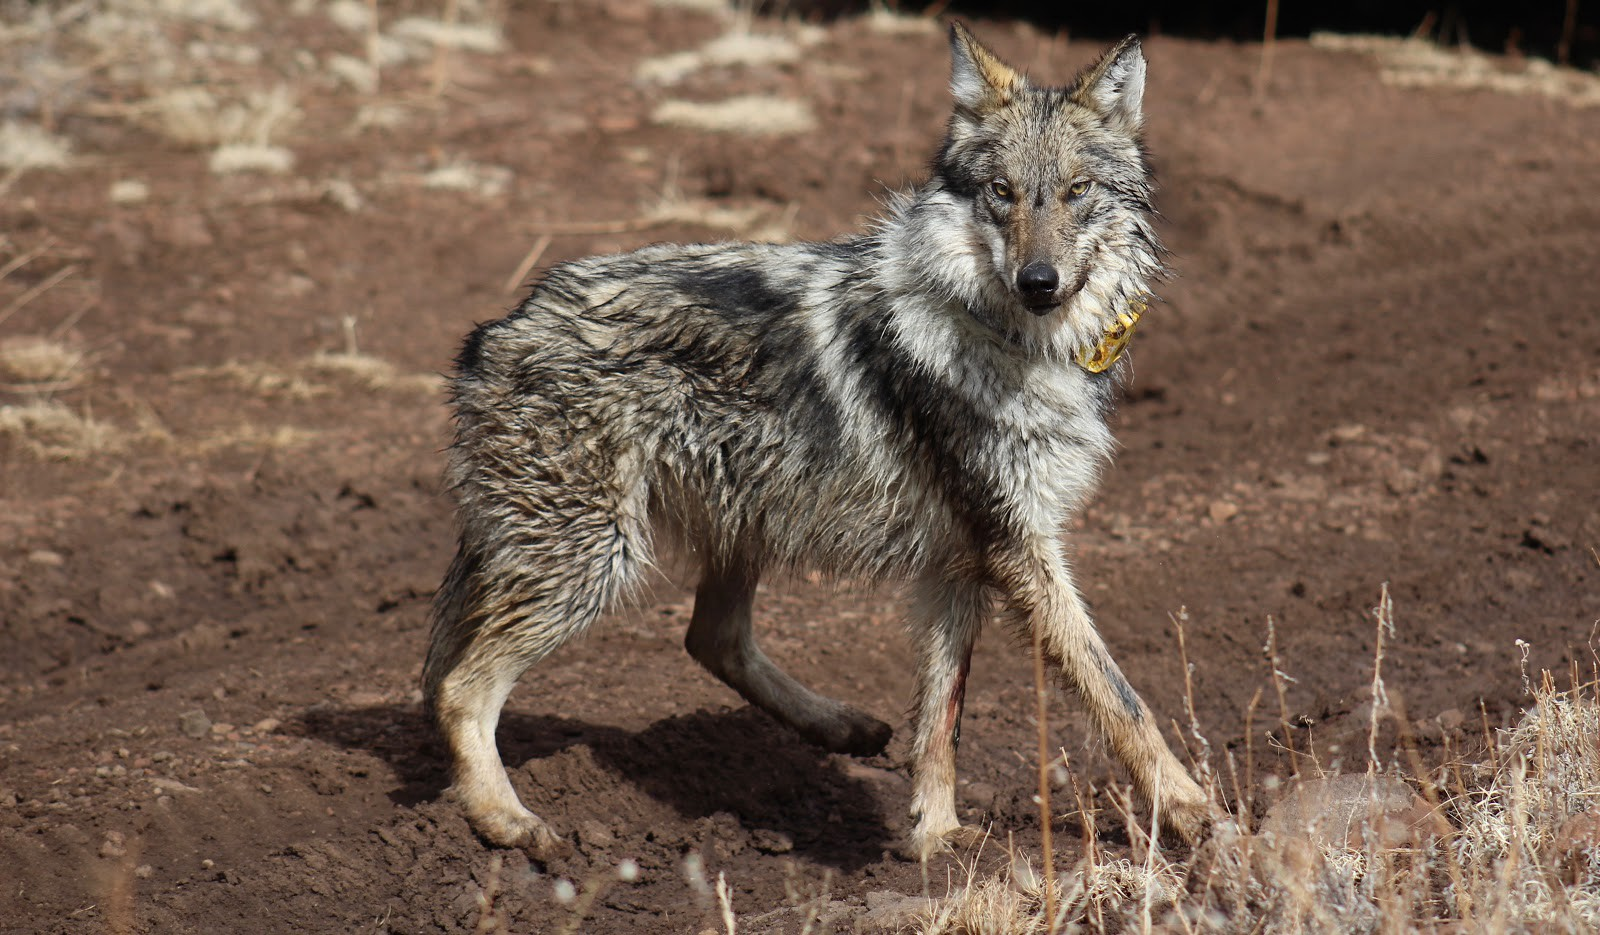 A wolf with a yellow radio collar looks at the photographer